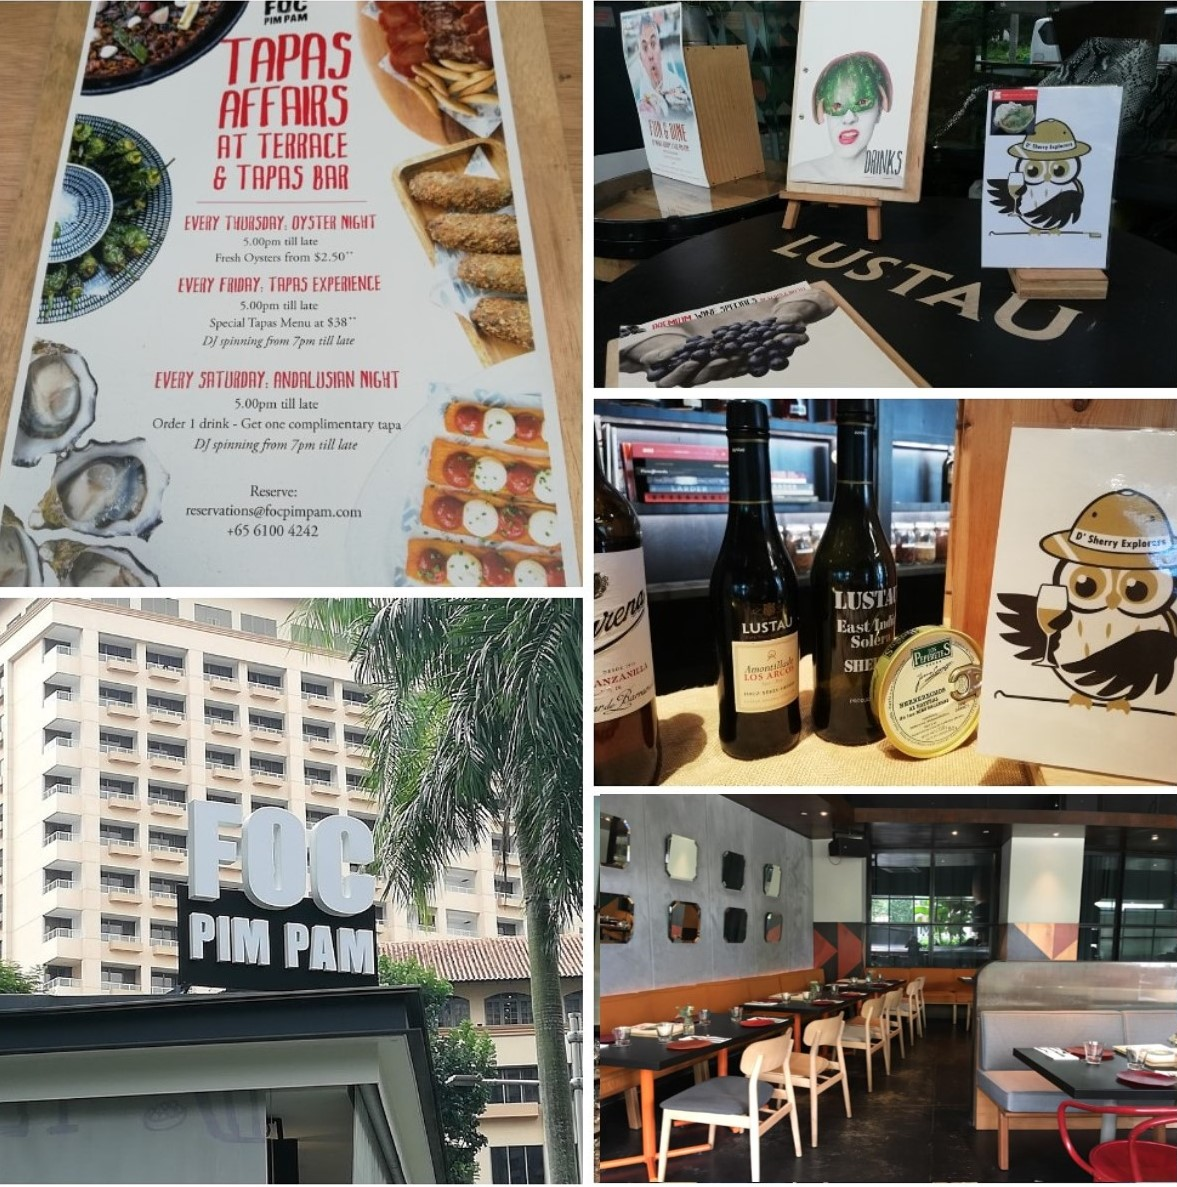 "Discover Sherry recommends: ""FOC PIM PAM"" Spanish Restaurant in Singapore"